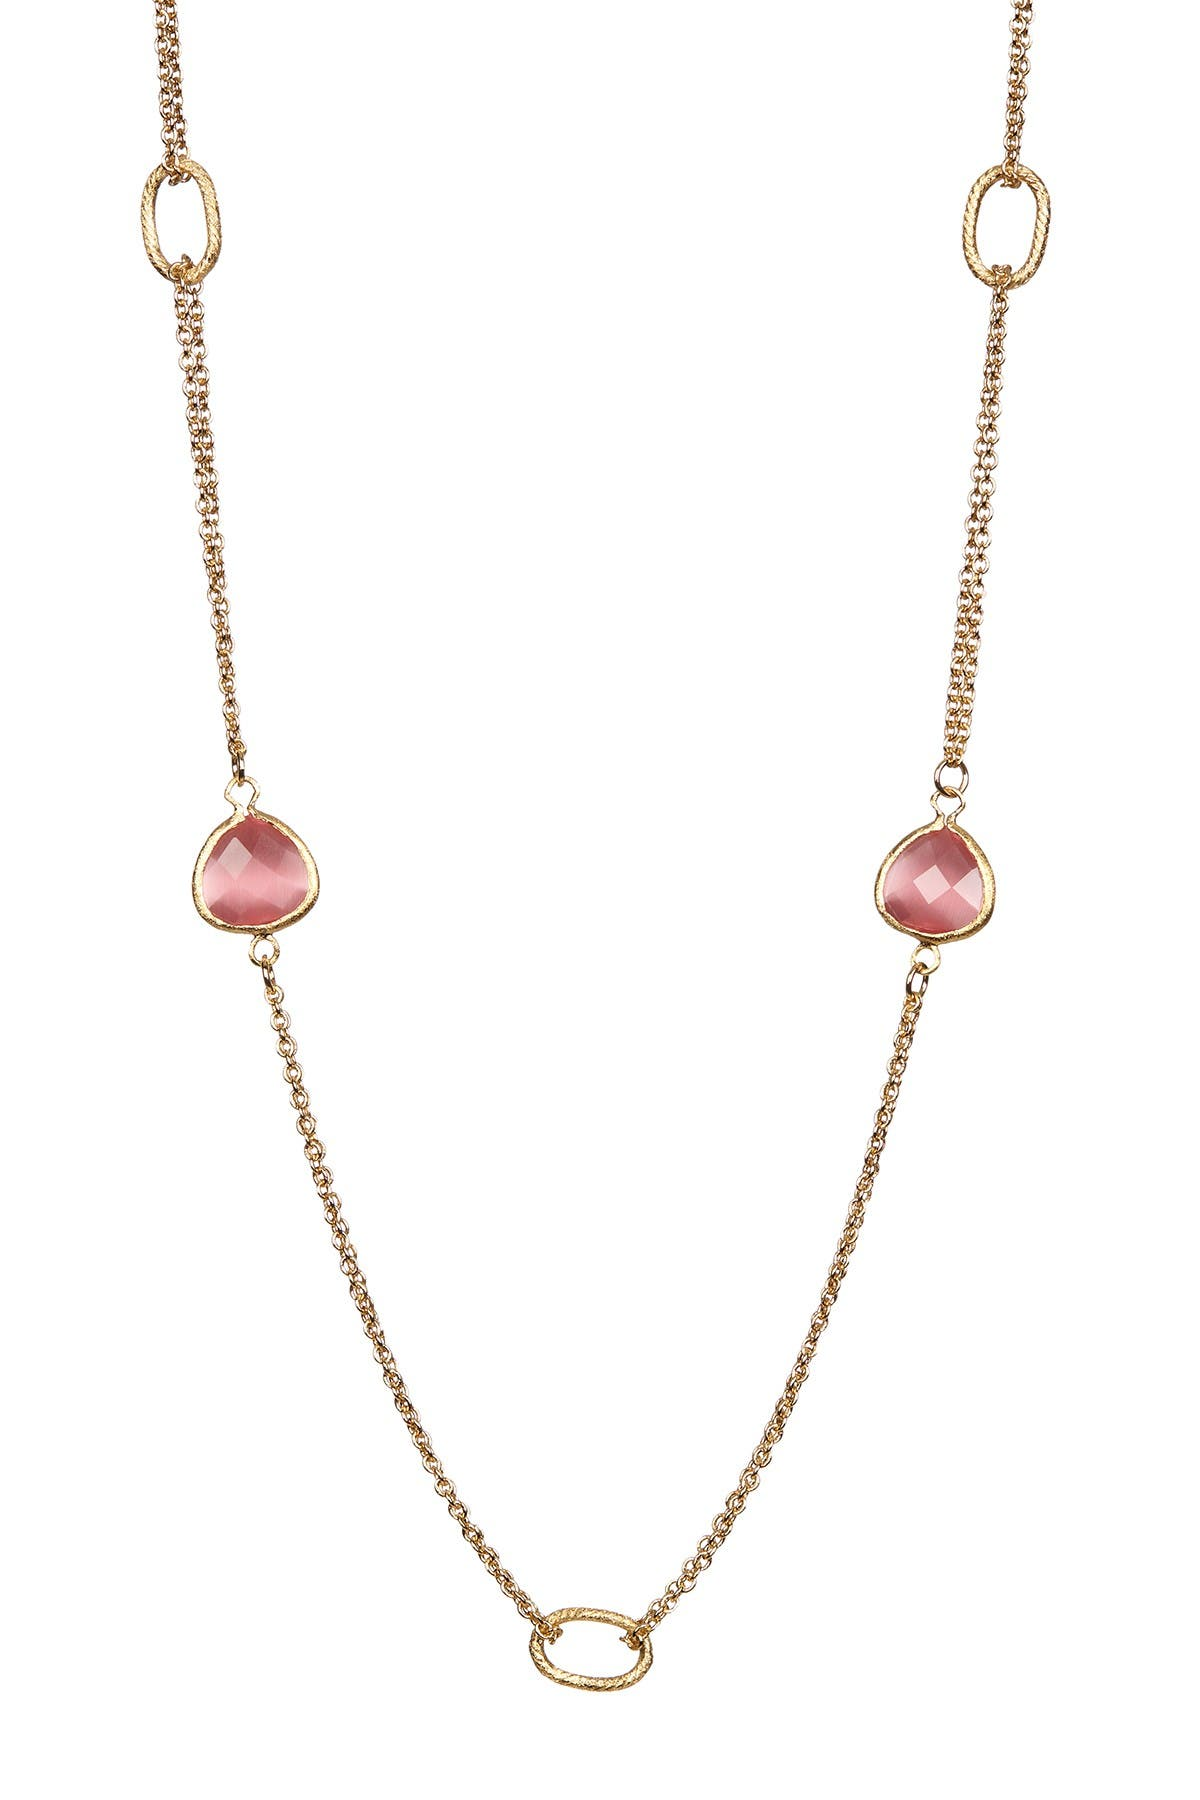 Image of Rivka Friedman 18K Gold Clad 2 Row Raspberry Cat's Eye Crystal Cable Link Necklace